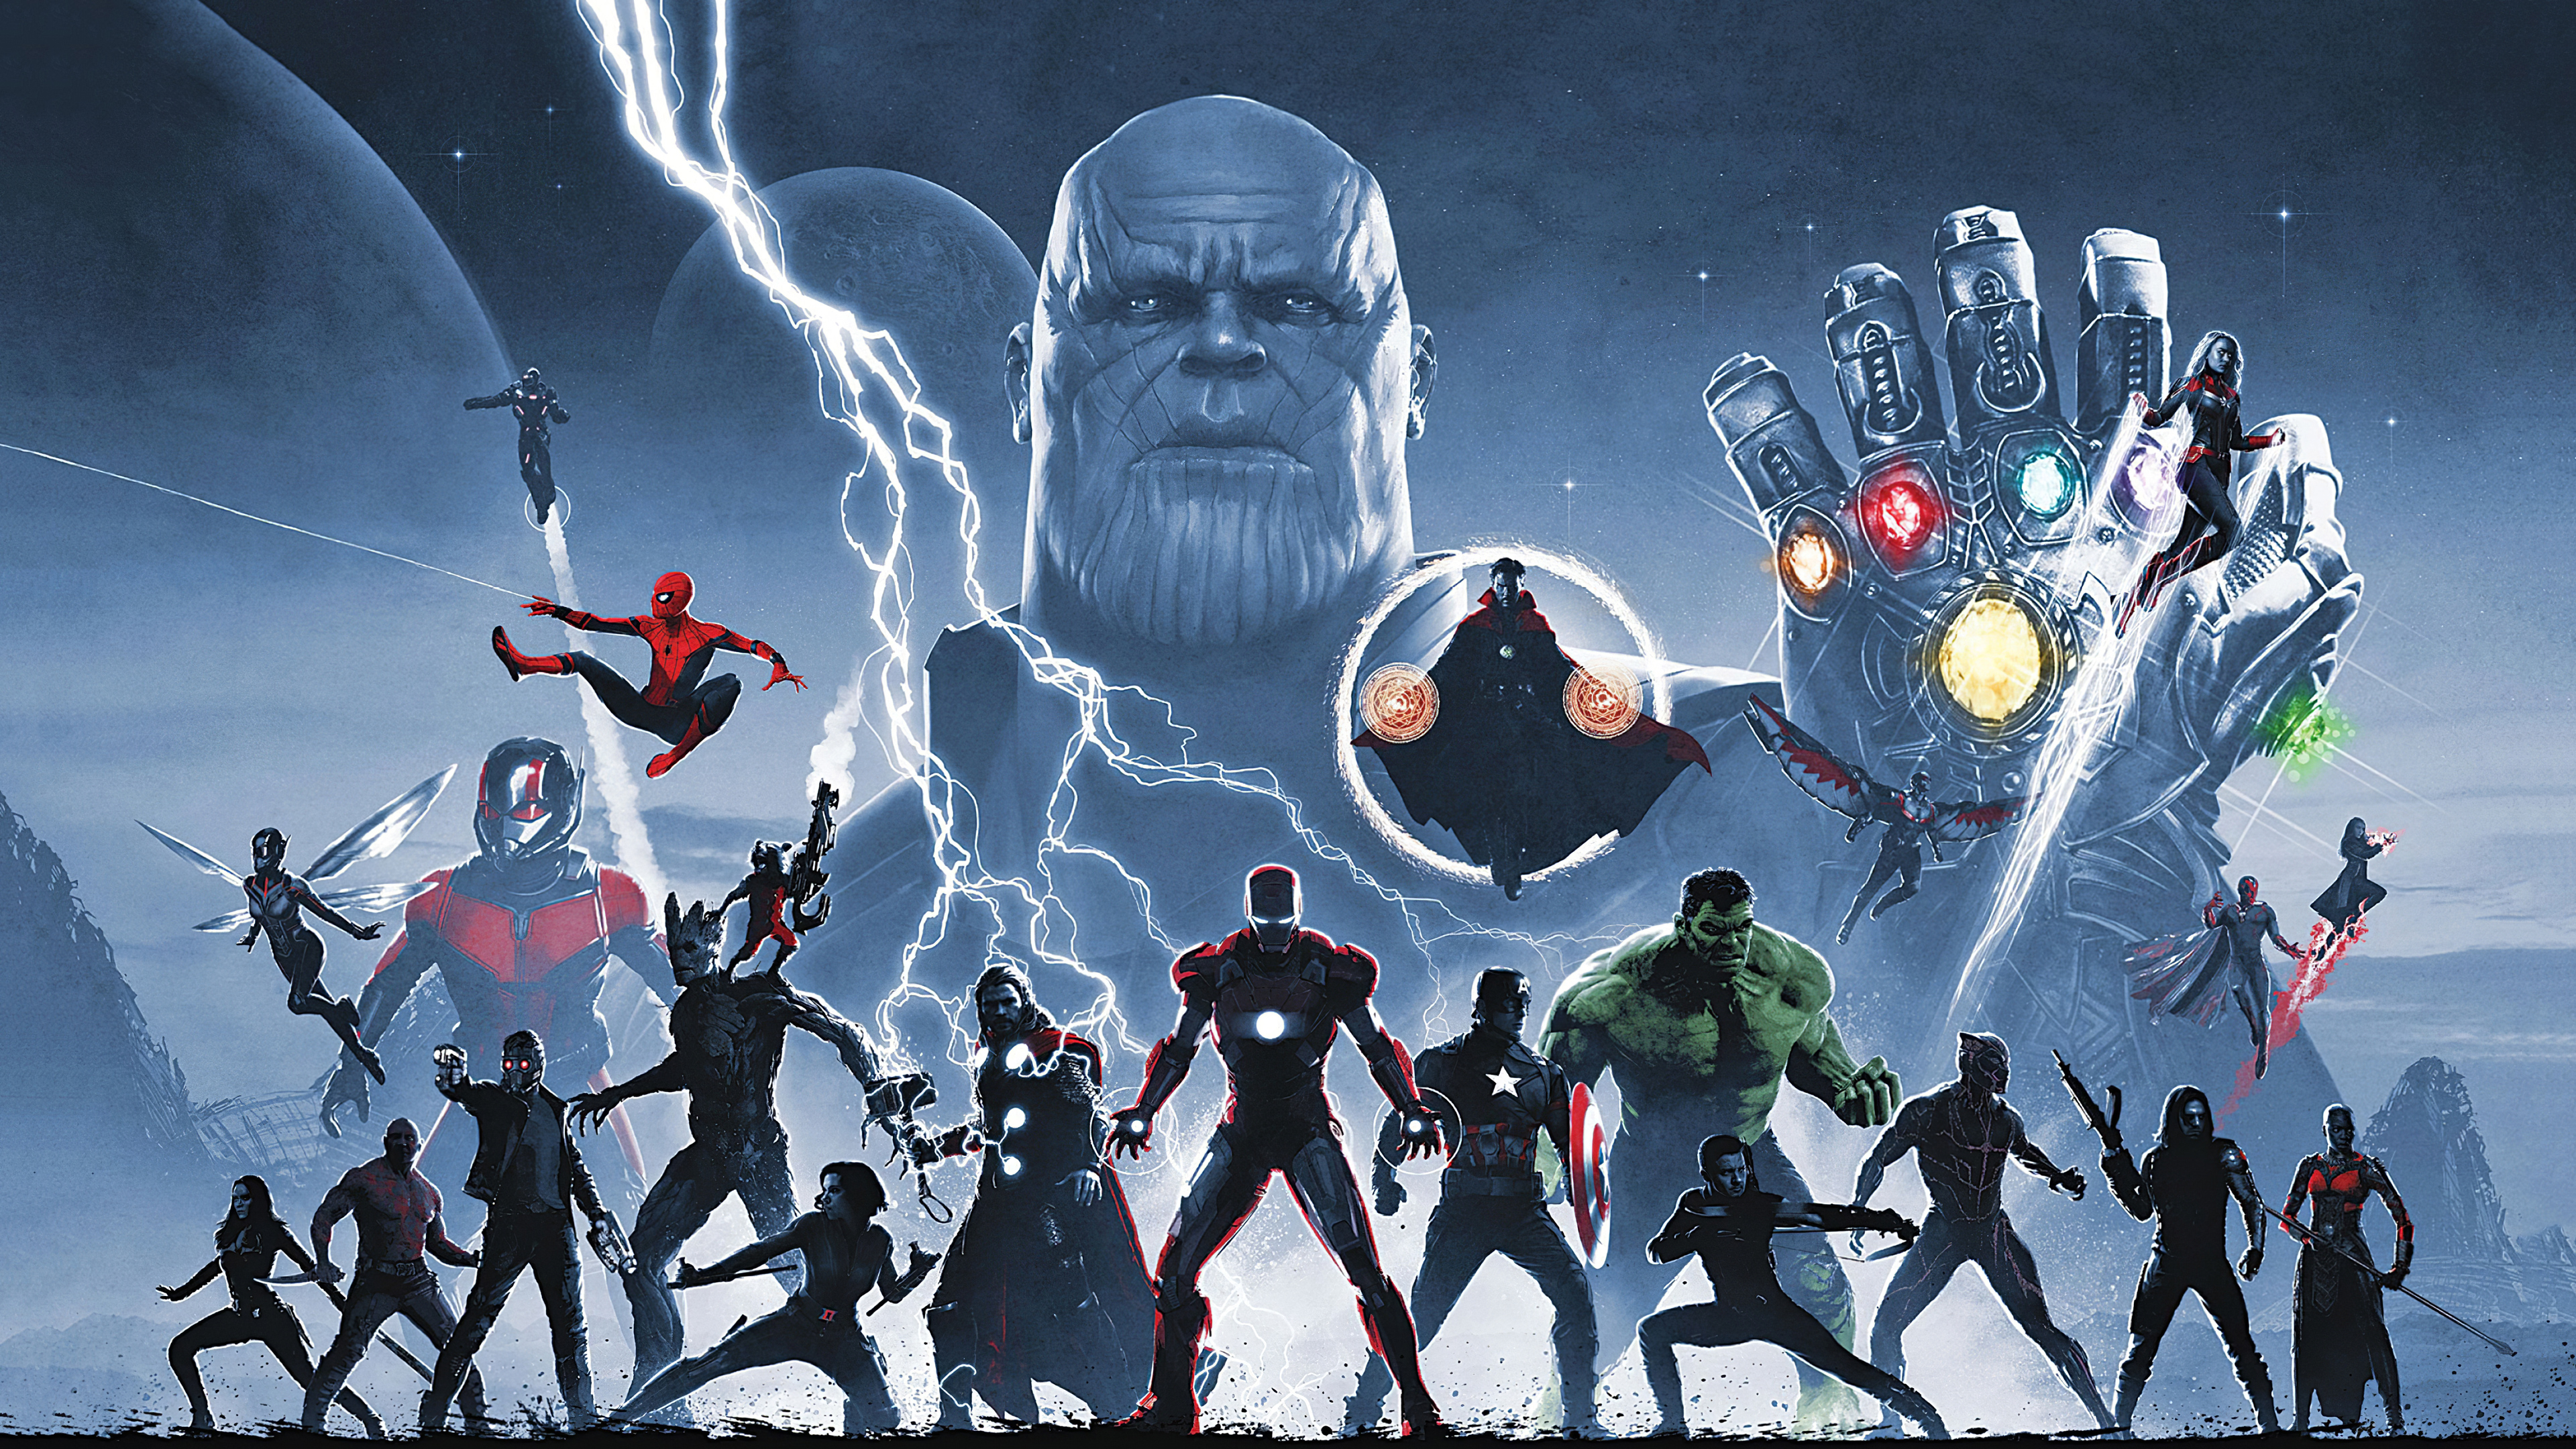 avengers infinity saga 1572368769 - Avengers Infinity Saga - war machine wallpapers, thor wallpapers, thanos-wallpapers, superheroes wallpapers, spiderman wallpapers, iron man wallpapers, hulk wallpapers, hd-wallpapers, captain marvel wallpapers, captain america wallpapers, avengers-wallpapers, artwork wallpapers, 4k-wallpapers